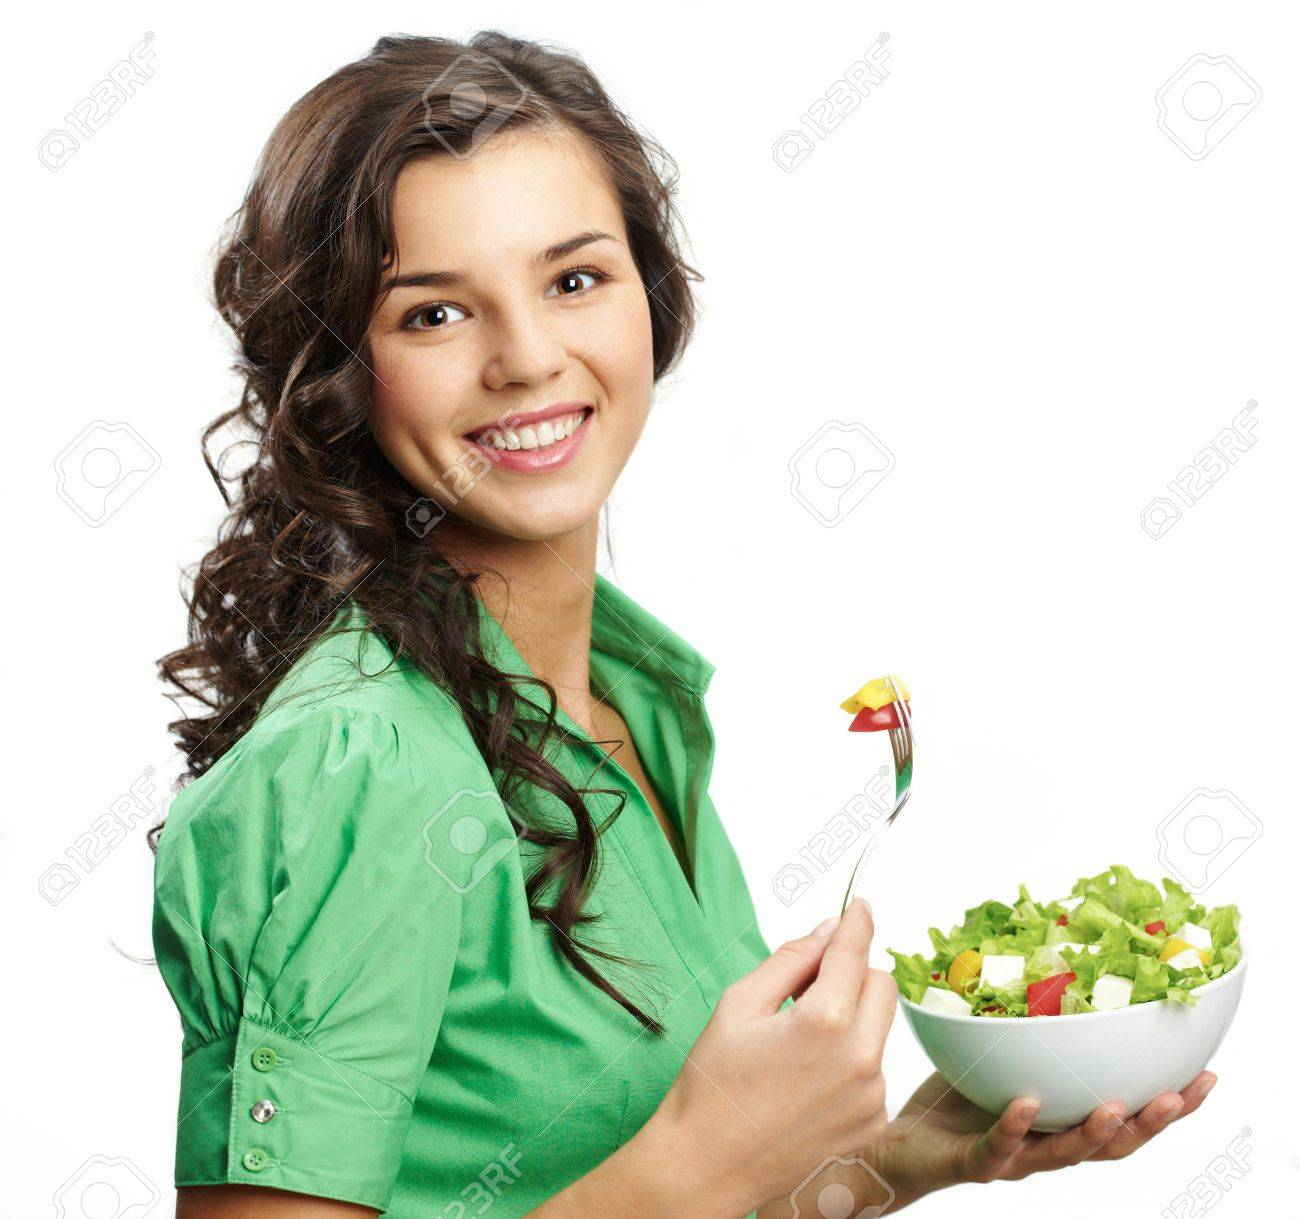 Portrait of a girl with bawl of salad looking at camera Stock Photo - 8227389